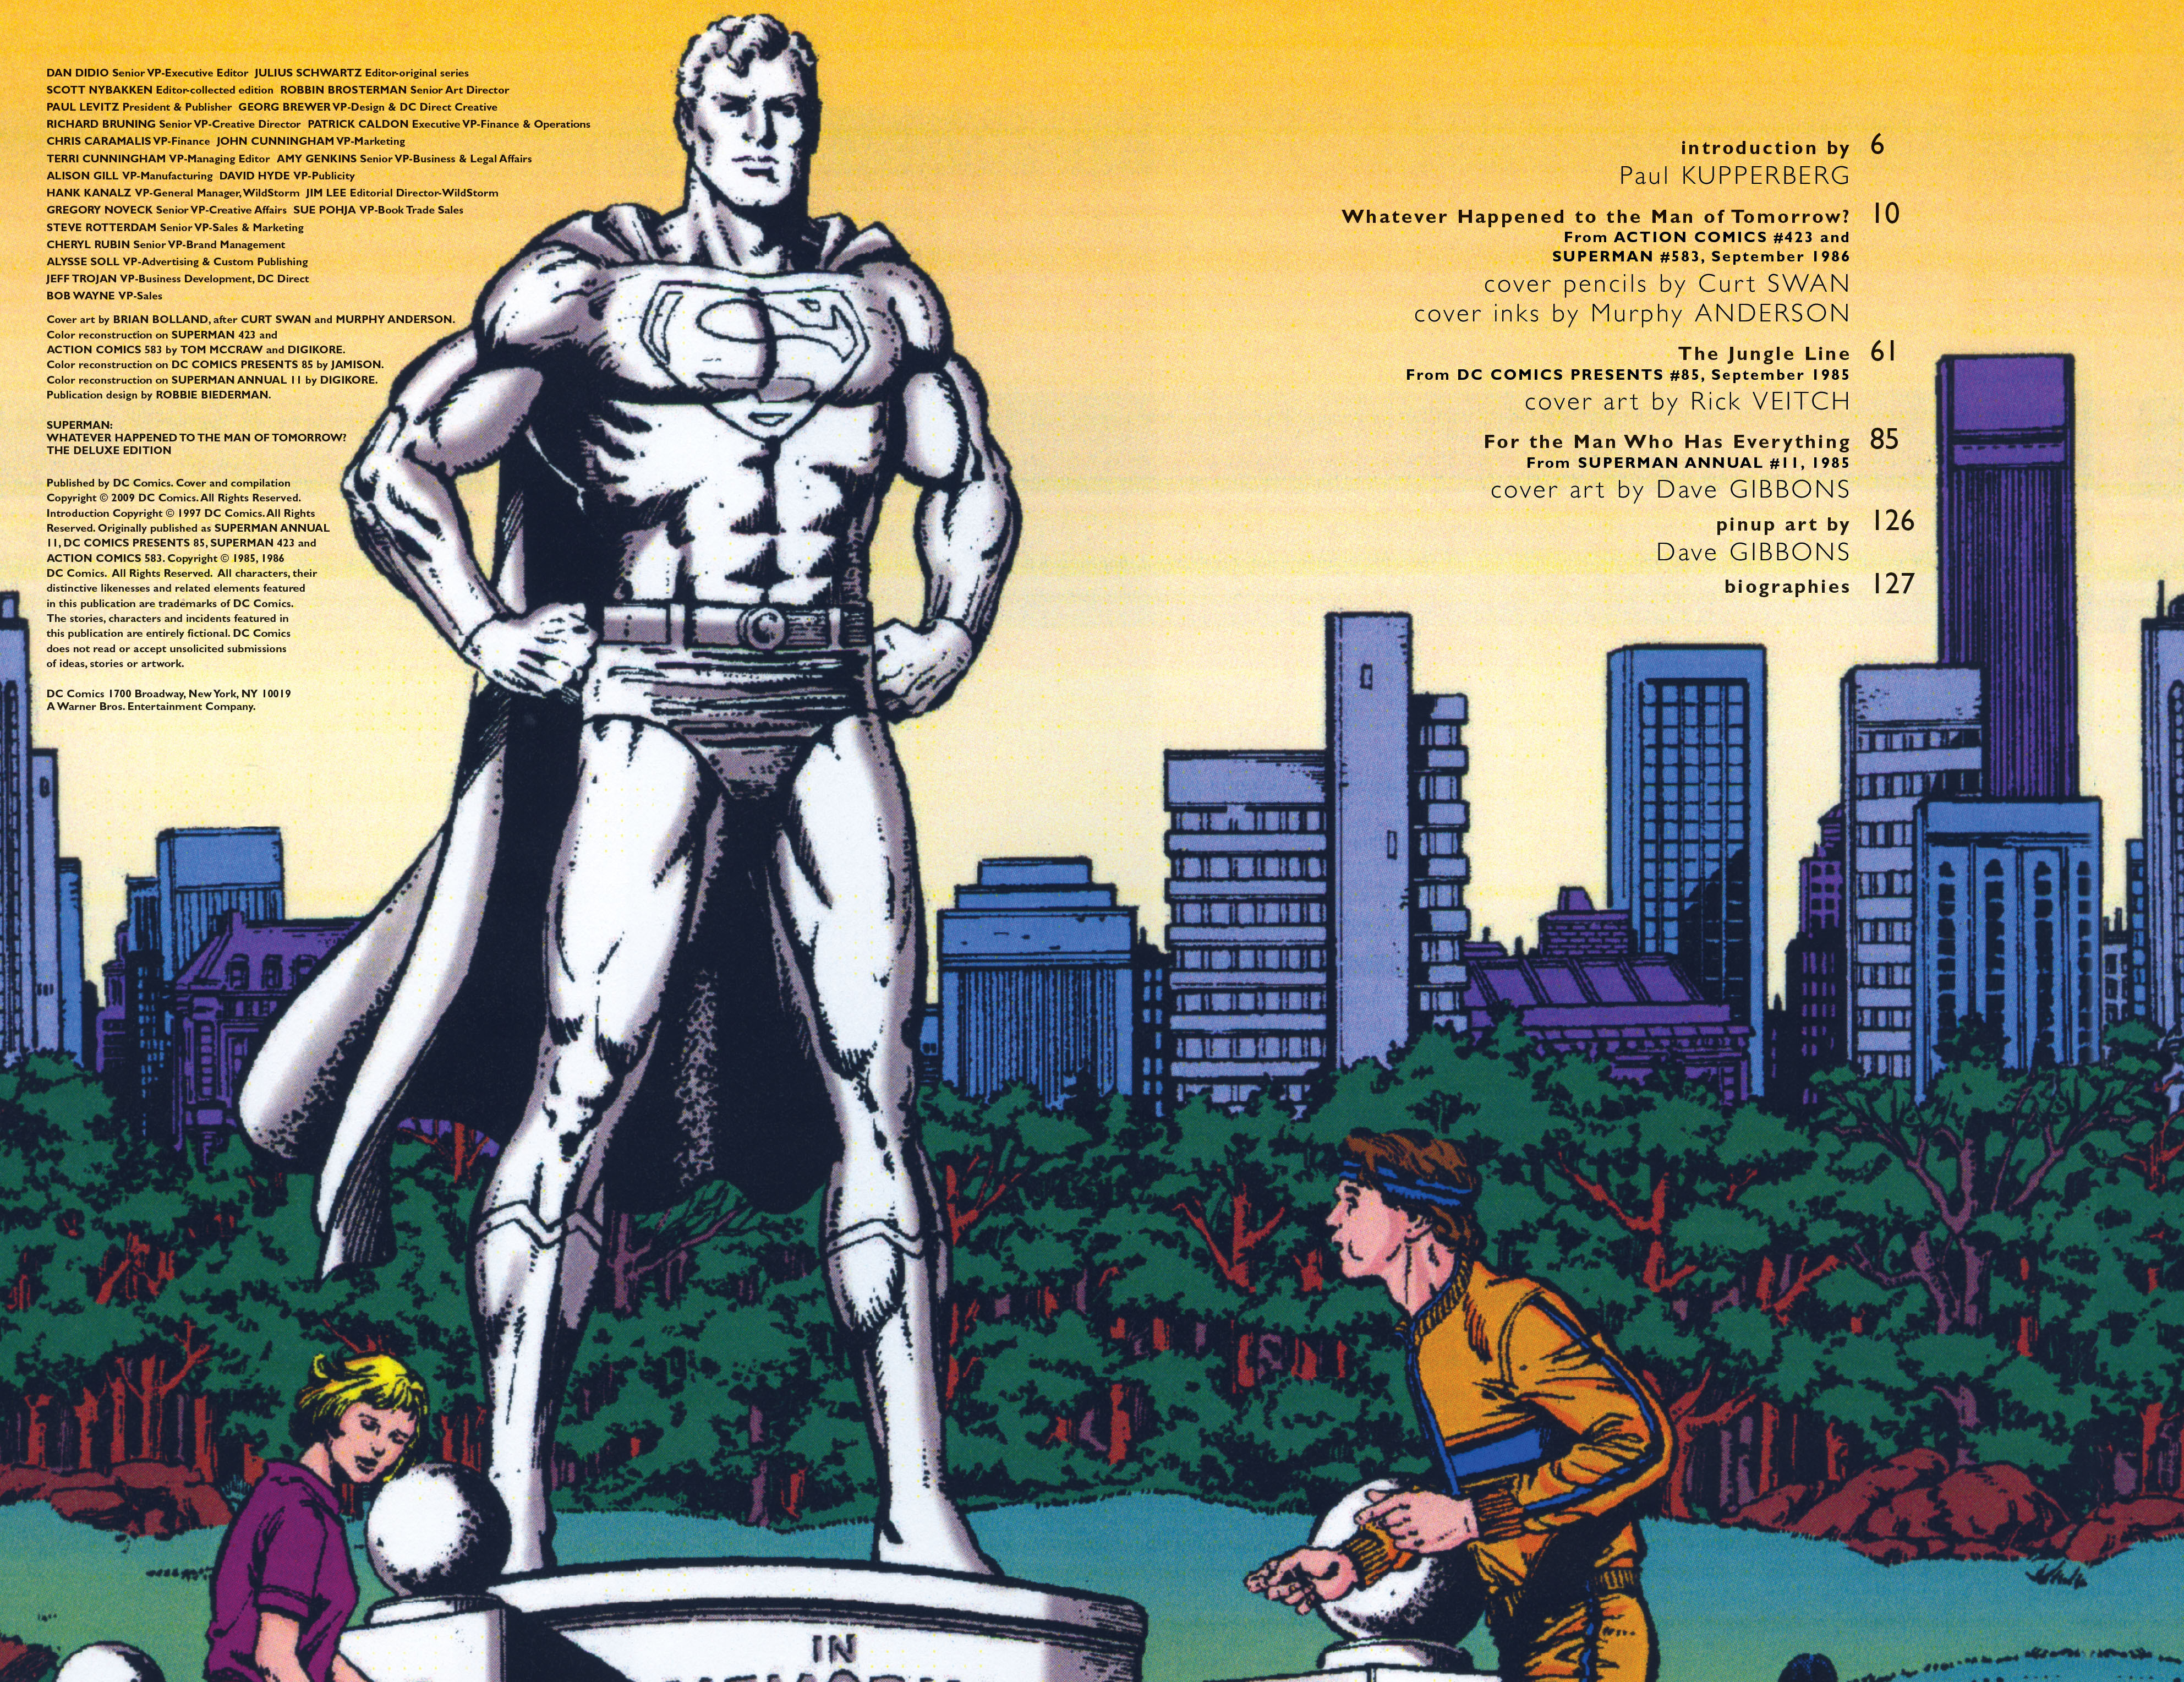 Read online Superman: Whatever Happened to the Man of Tomorrow? comic -  Issue # TPB - 4